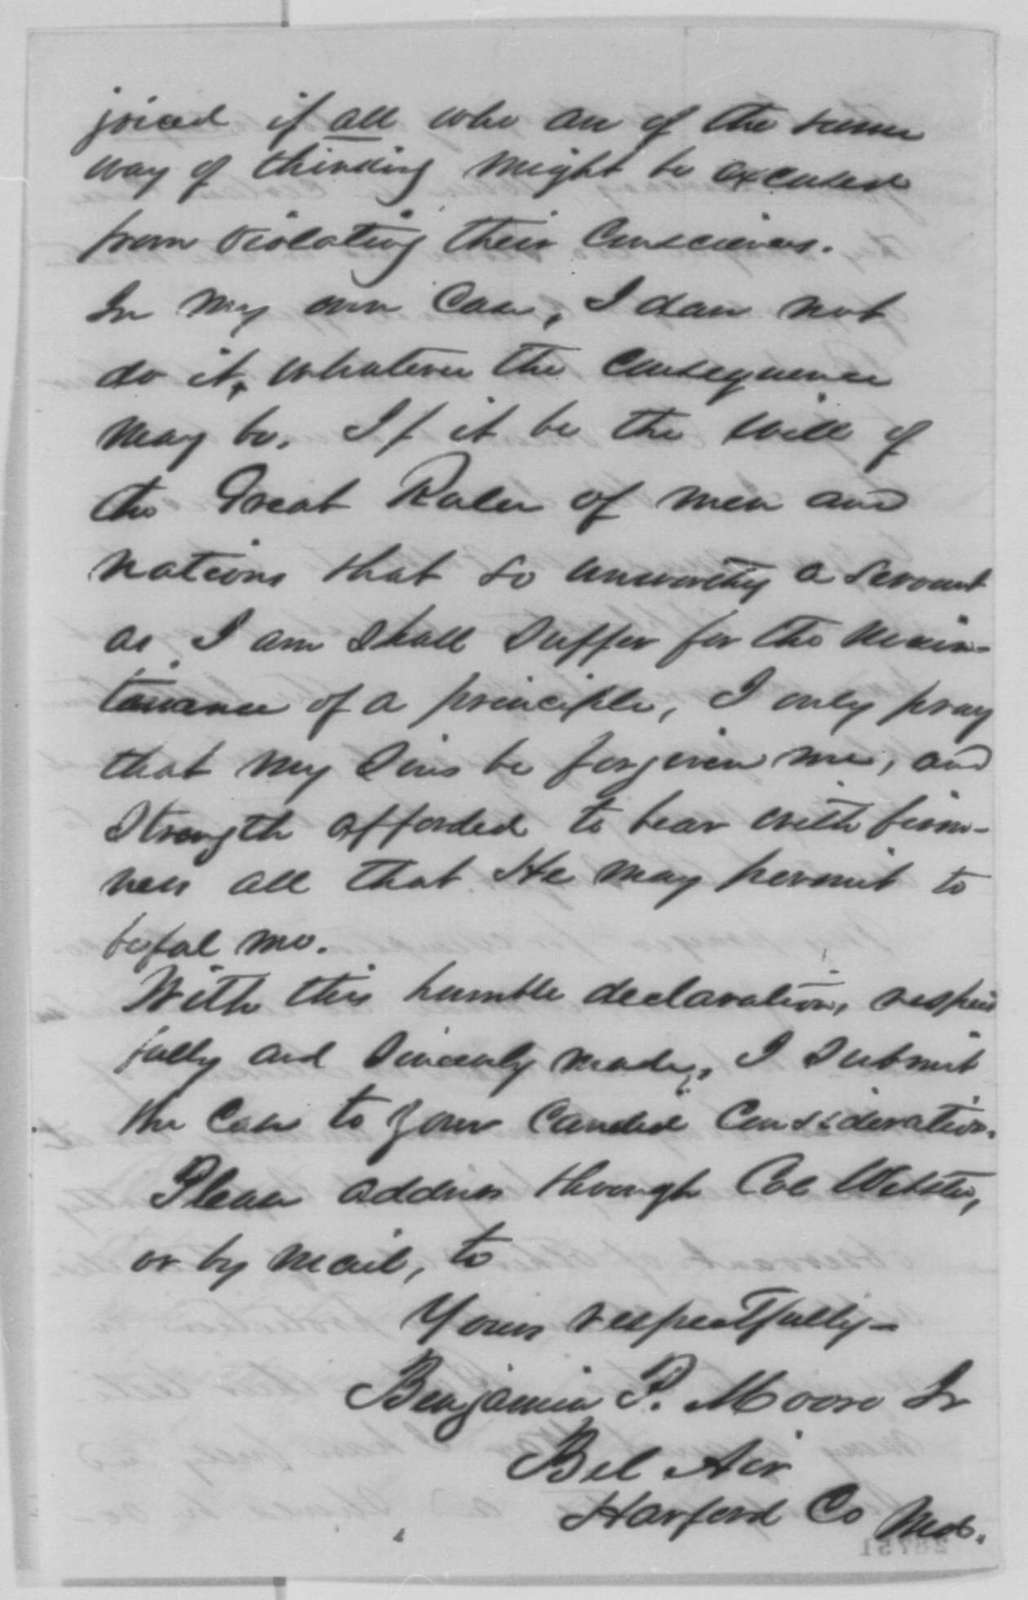 Benjamin P. Moore Jr. to Abraham Lincoln, Friday, December 18, 1863  (Requests exemption from military service because he is a conscientious objector)